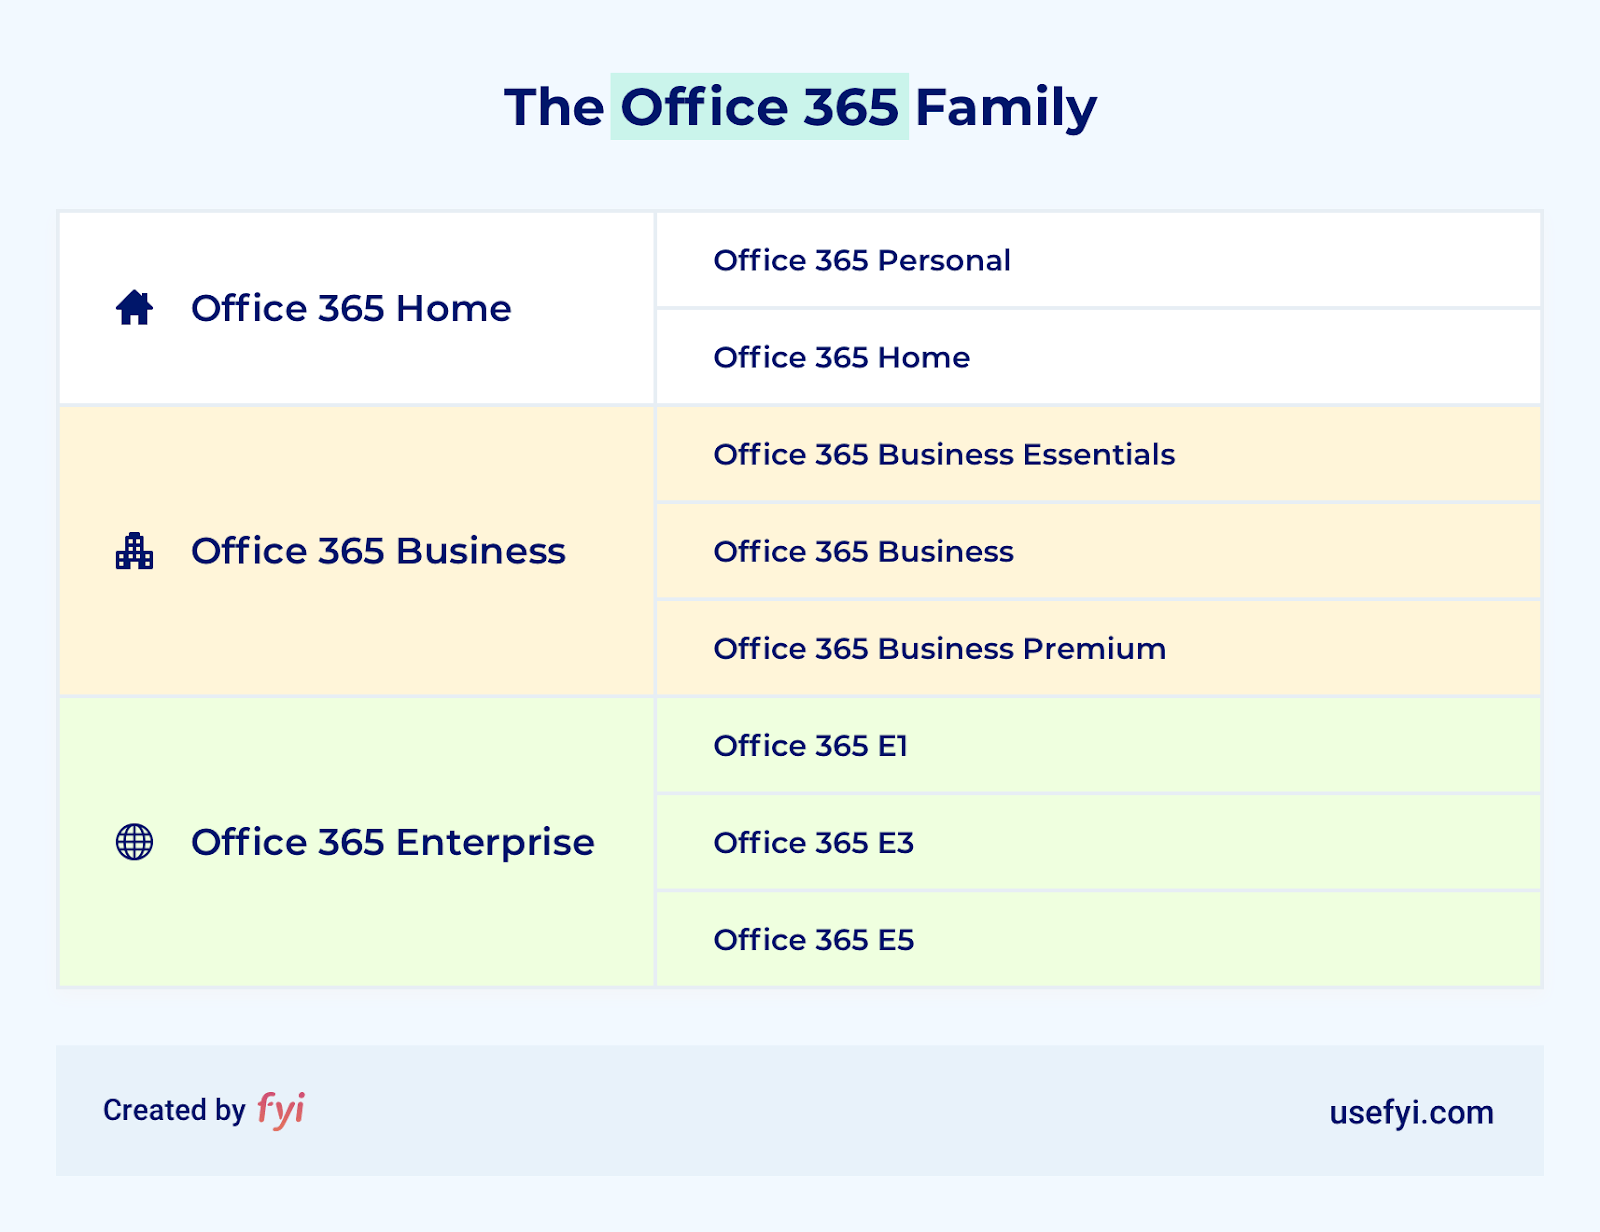 office 365 family of products